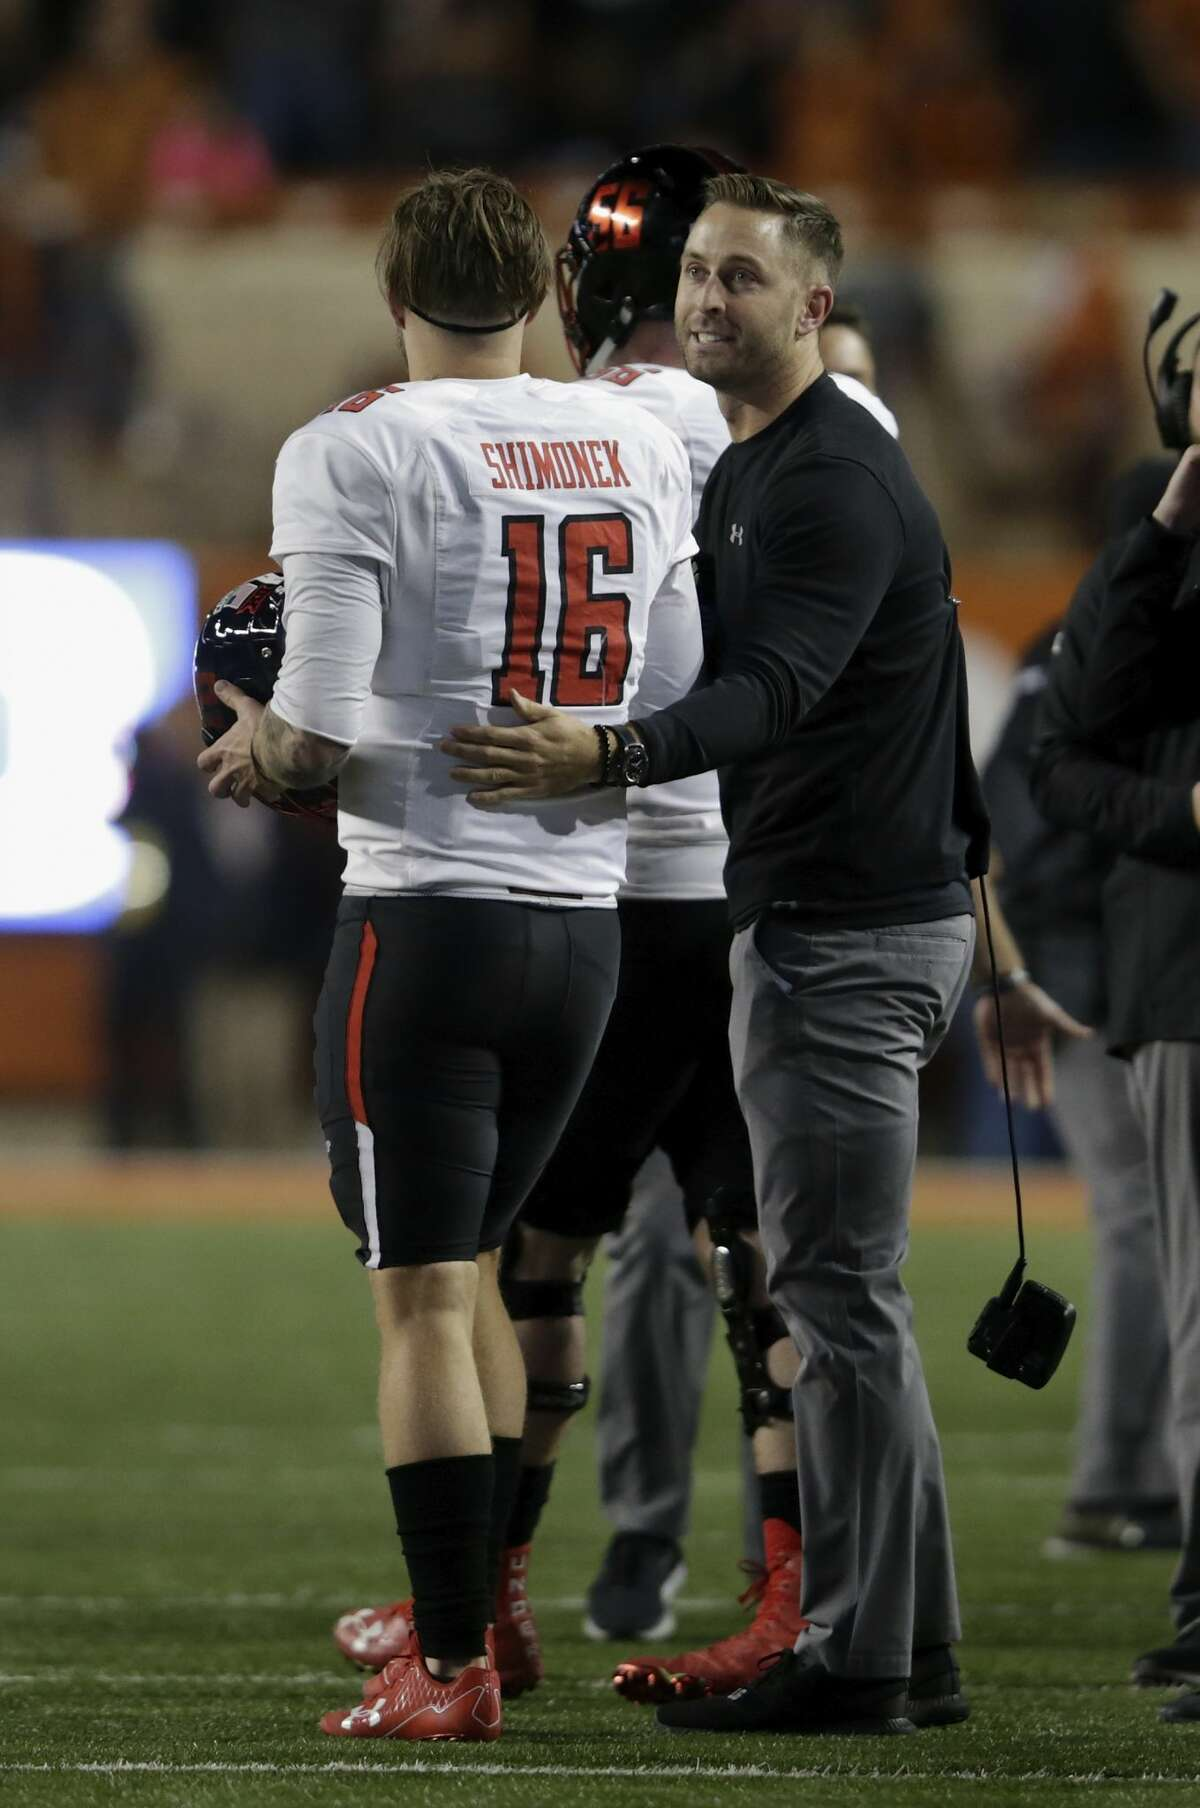 AUSTIN, TX - NOVEMBER 24: Head coach Kliff Kingsbury of the Texas Tech Red Raiders talks with Nic Shimonek #16 of the Texas Tech Red Raiders in the fourth quarter against the Texas Longhorns at Darrell K Royal-Texas Memorial Stadium on November 24, 2017 in Austin, Texas. (Photo by Tim Warner/Getty Images)